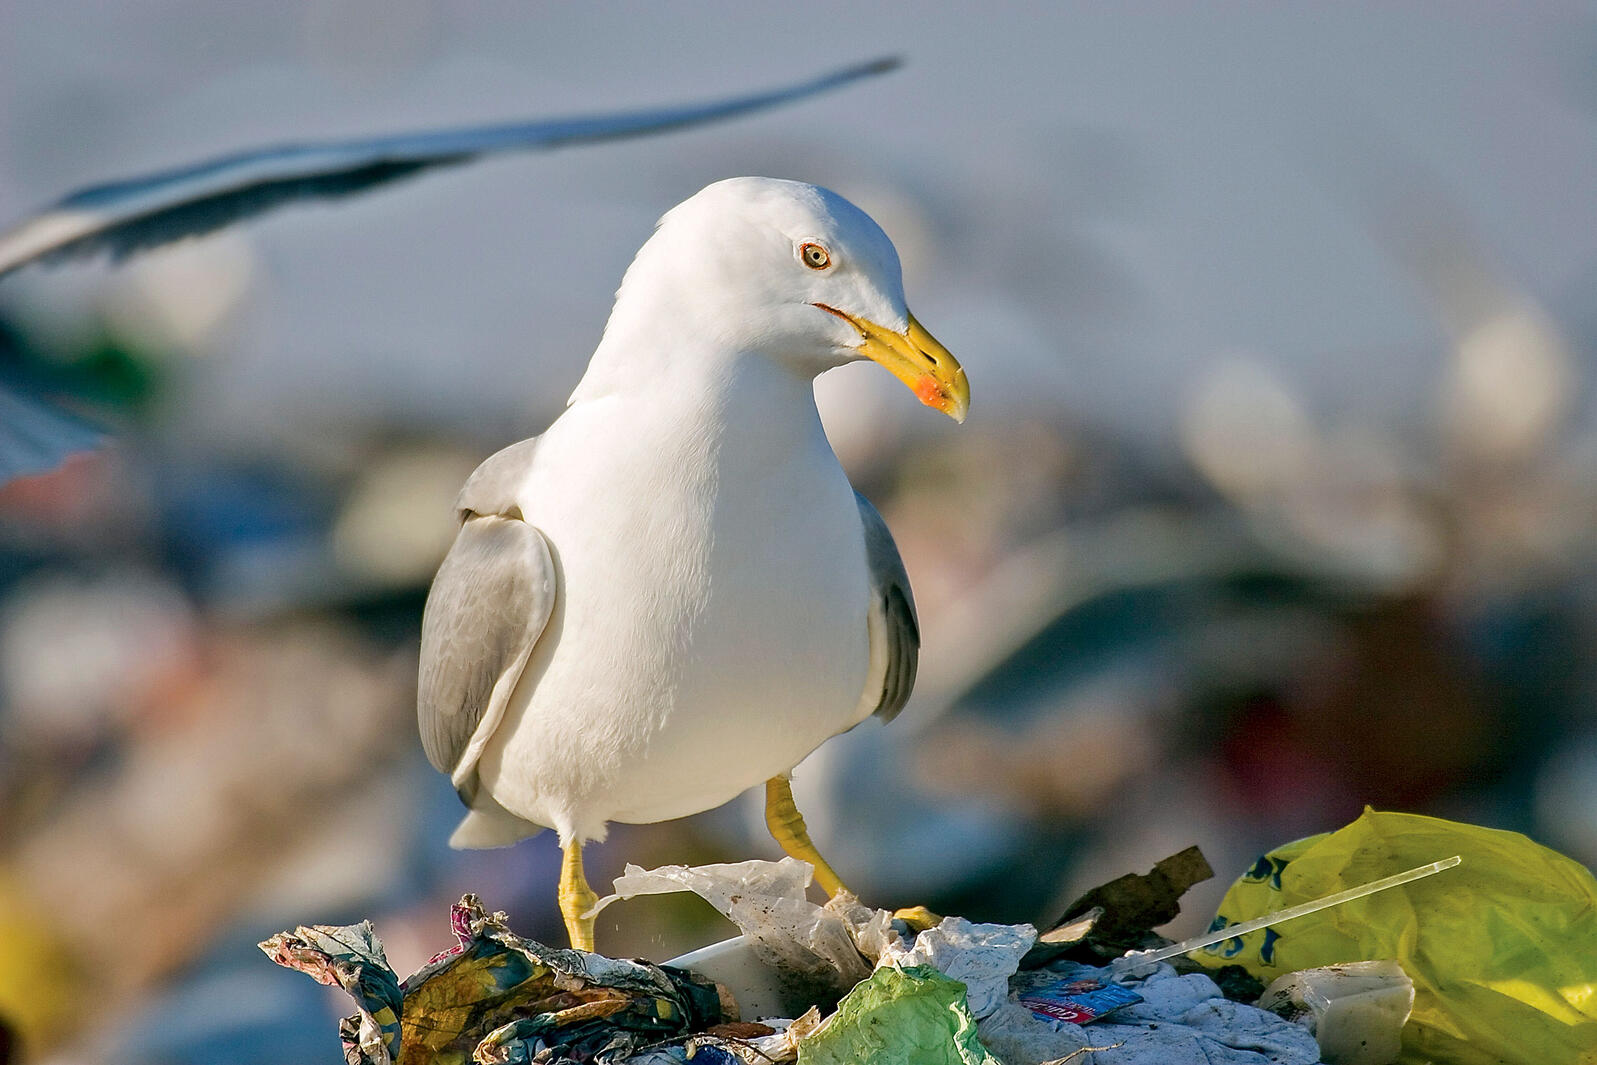 The Yellow-legged Gull is a European and African species that was once considered to be a kind of Herring Gull. Like its counterpart, it forms large nesting colonies, flocks to dumps, and pisses a lot of people off. Goran Šafarek/Alamy